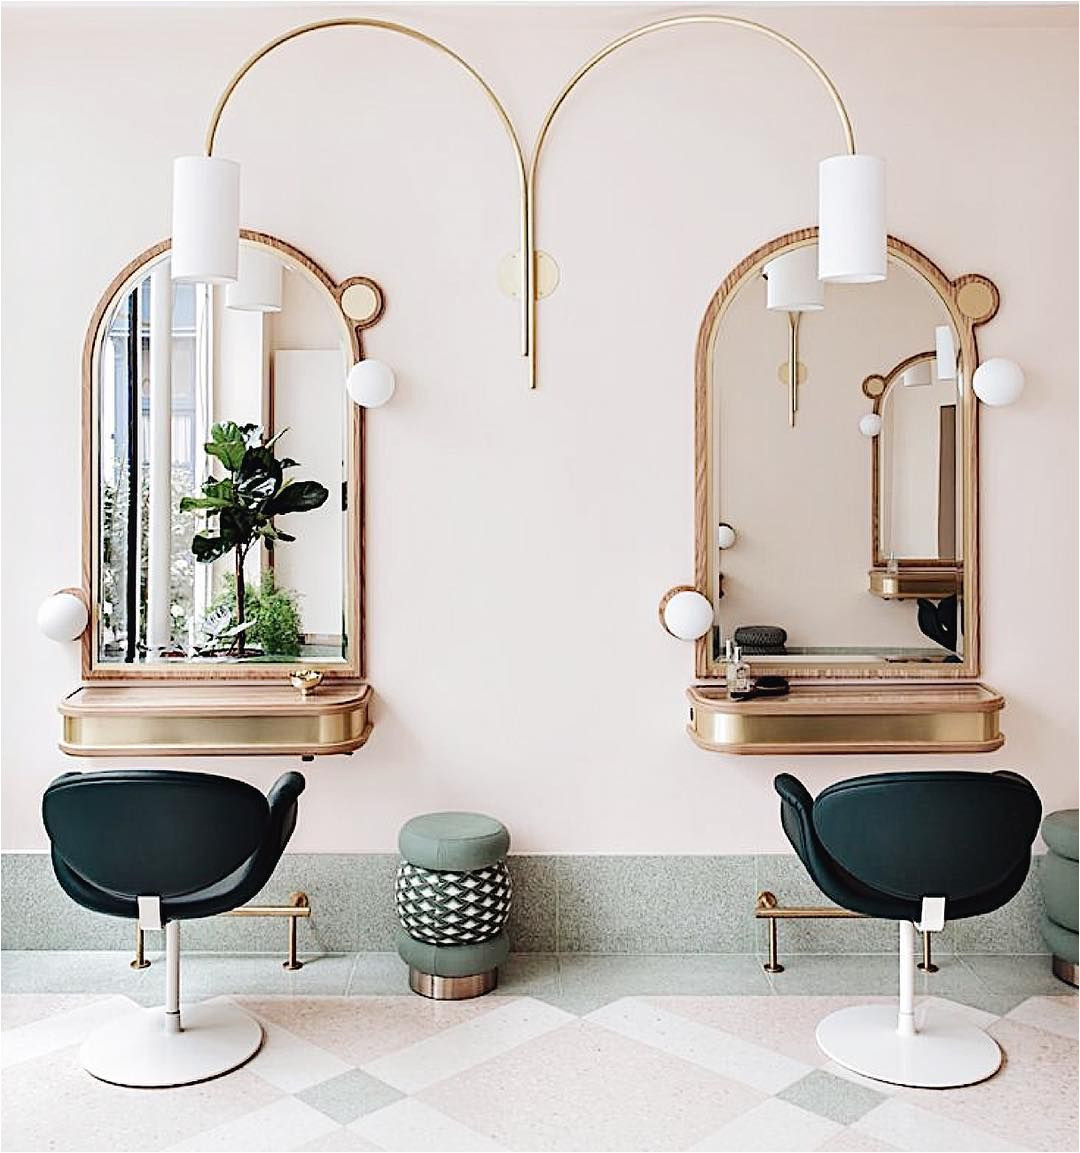 Muebles Baratas En Houston Tx Happy Monday Beauty Decor Inspiration Salon En 2019 Salon